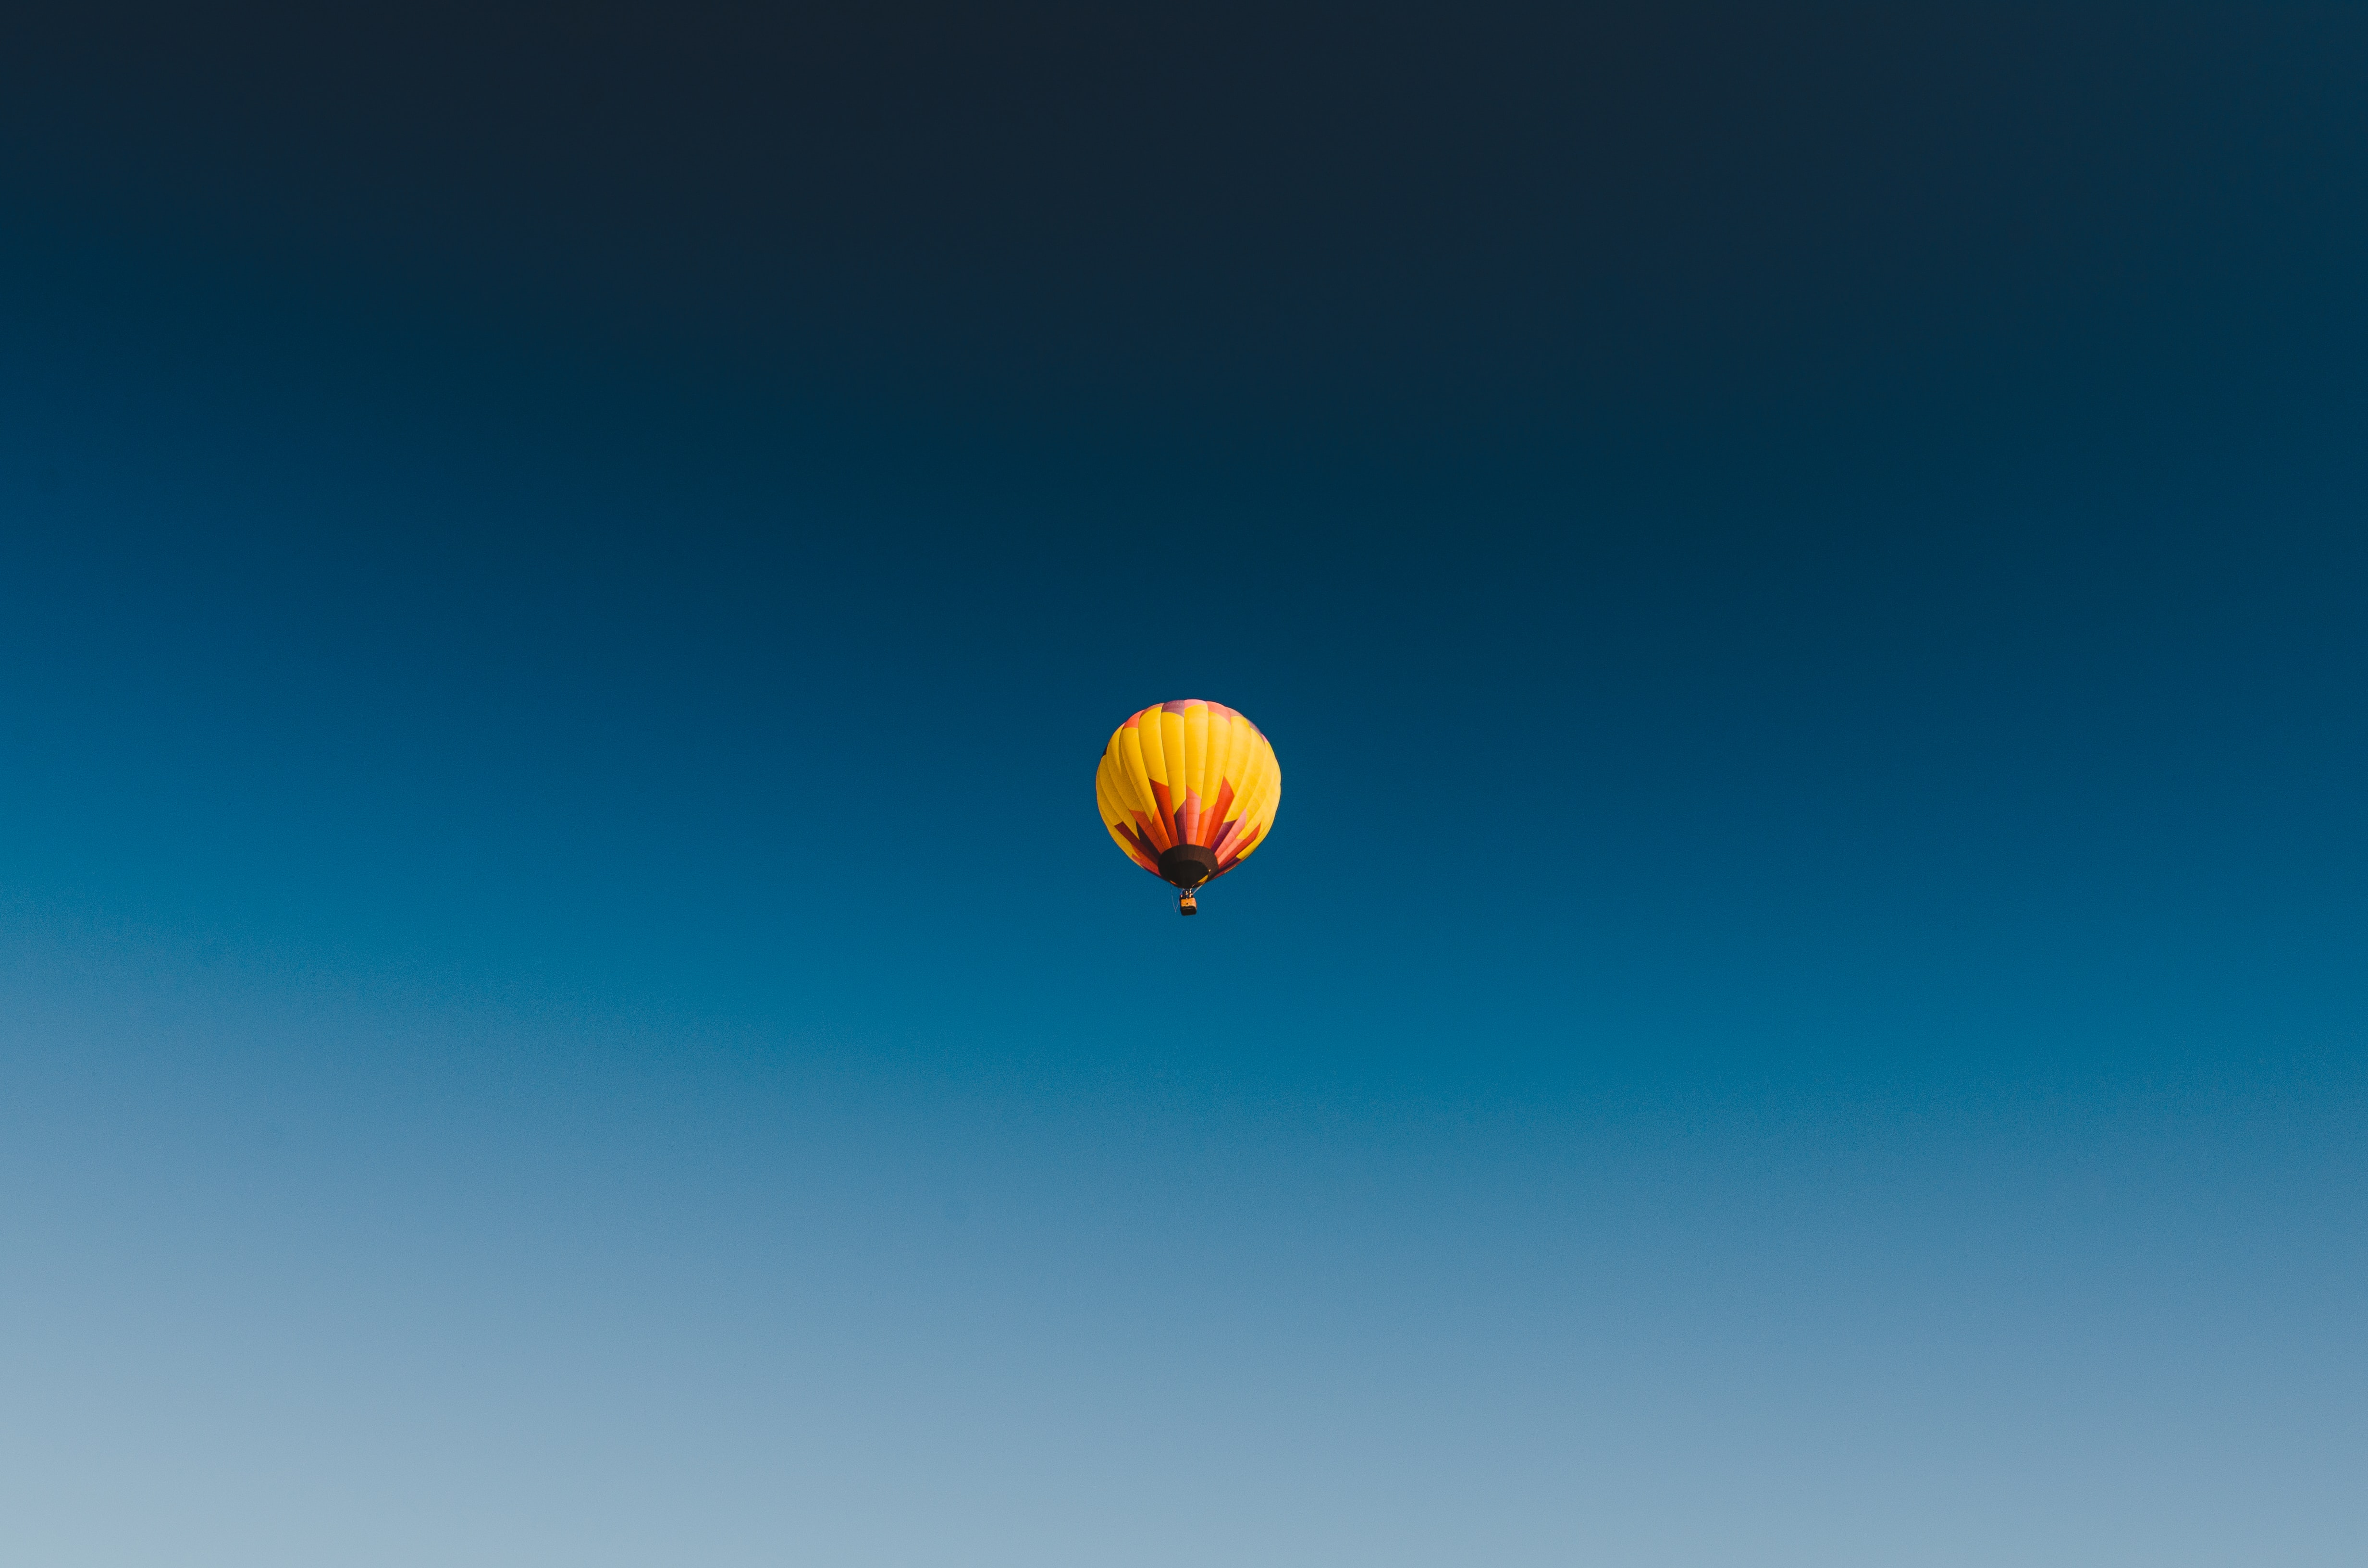 worm's eye view photography of yellow hot air balloon on the skies